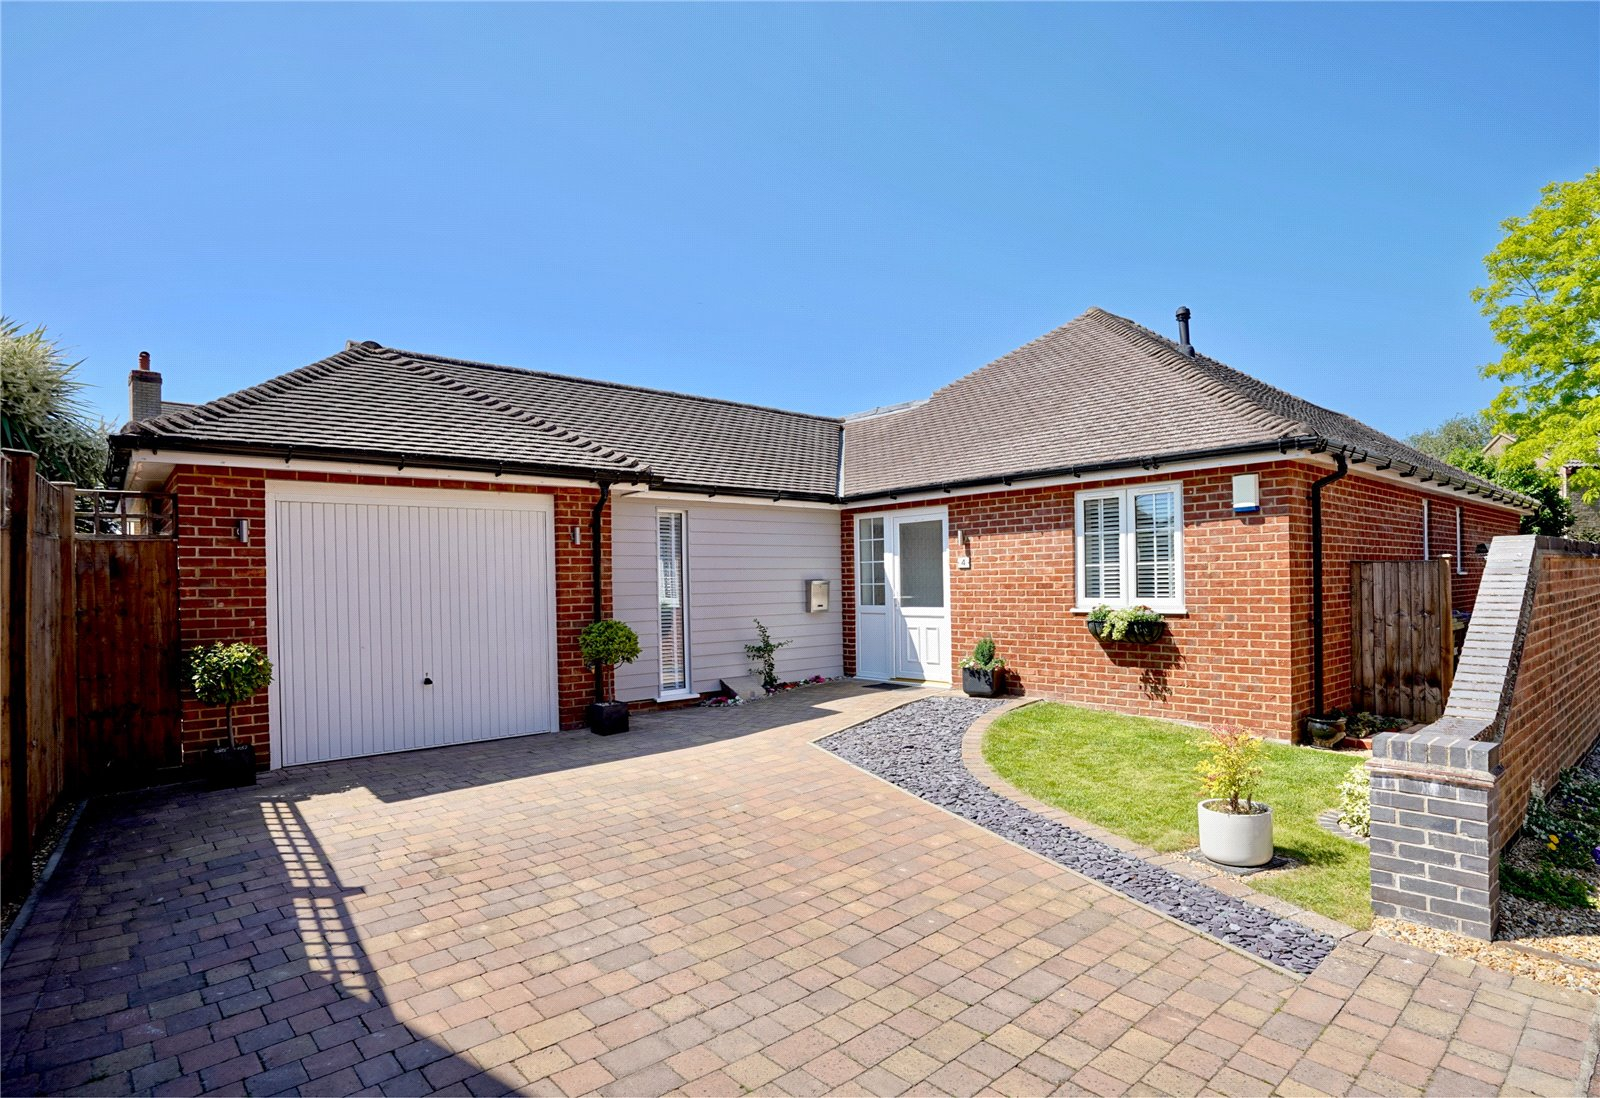 3 bed bungalow for sale in Pipistrelle Close, Little Paxton, PE19